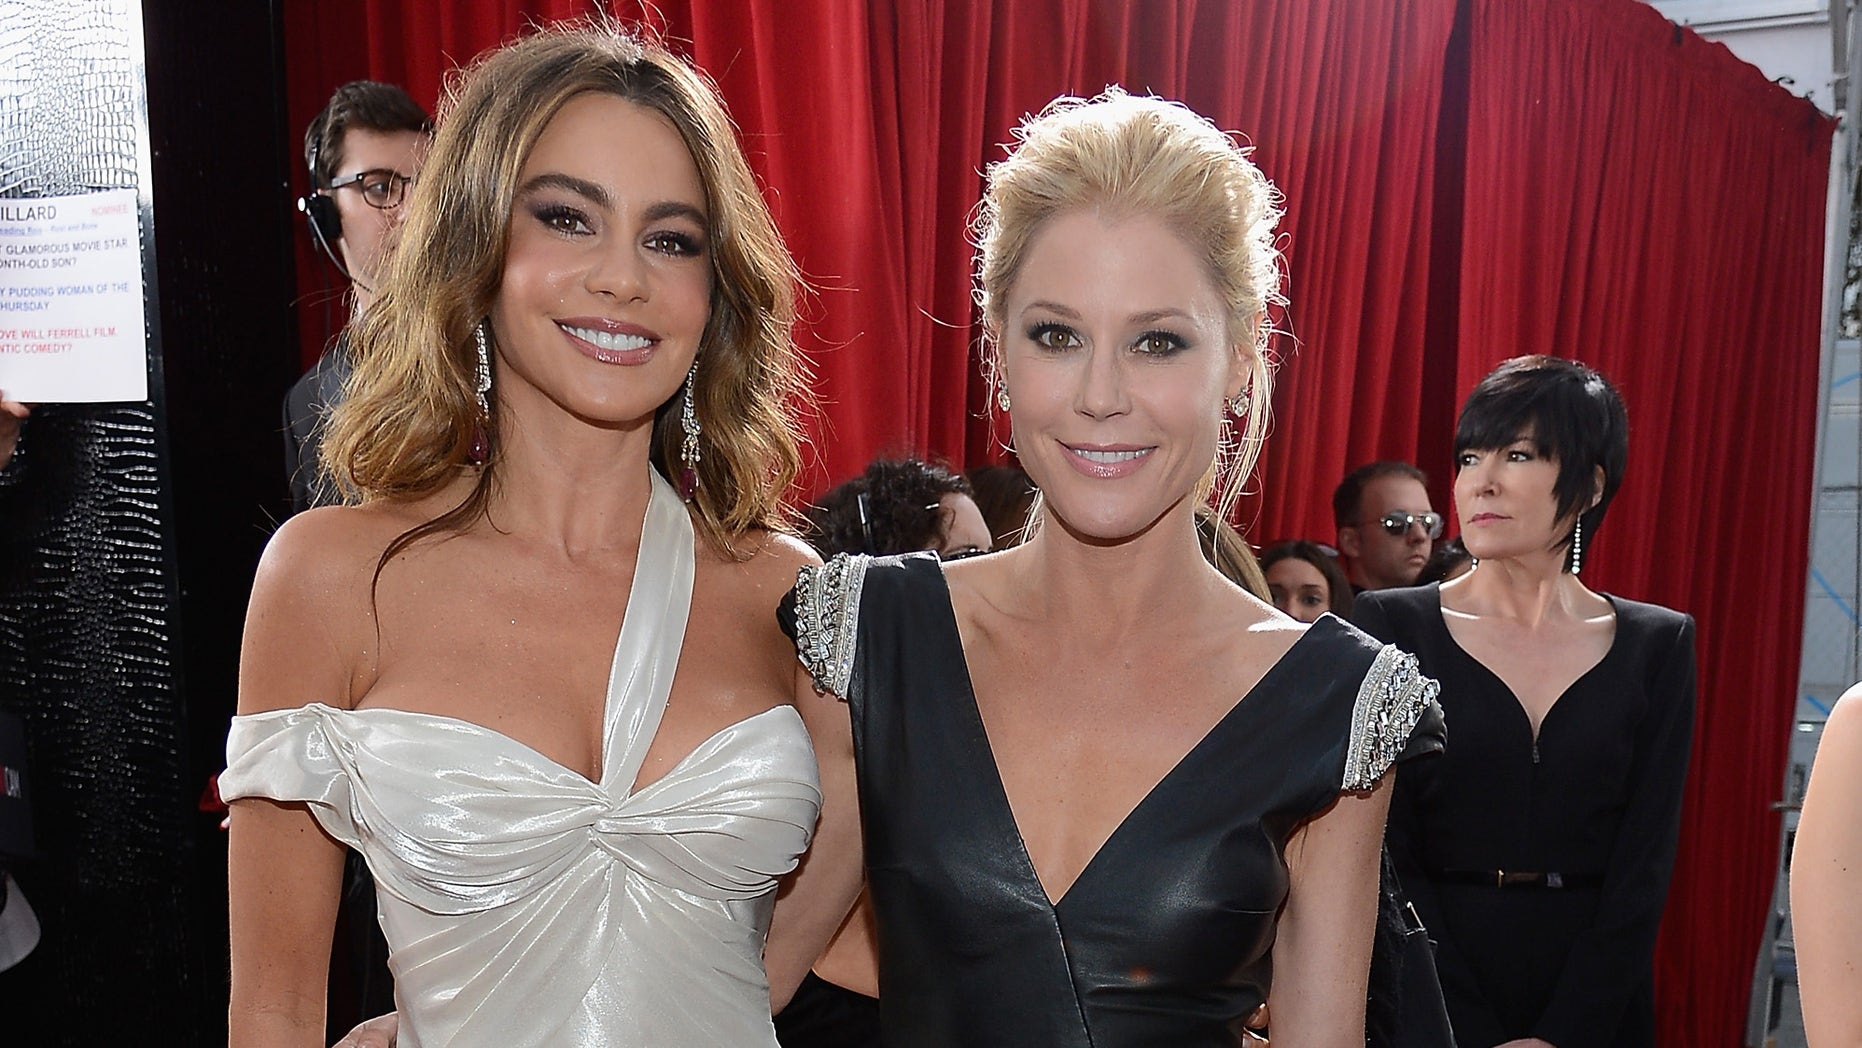 LOS ANGELES, CA - JANUARY 27: Actors Sofia Vergara and Julie Bowen arrives at the 19th Annual Screen Actors Guild Awards held at The Shrine Auditorium on January 27, 2013 in Los Angeles, California.  (Photo by Kevork Djansezian/Getty Images)